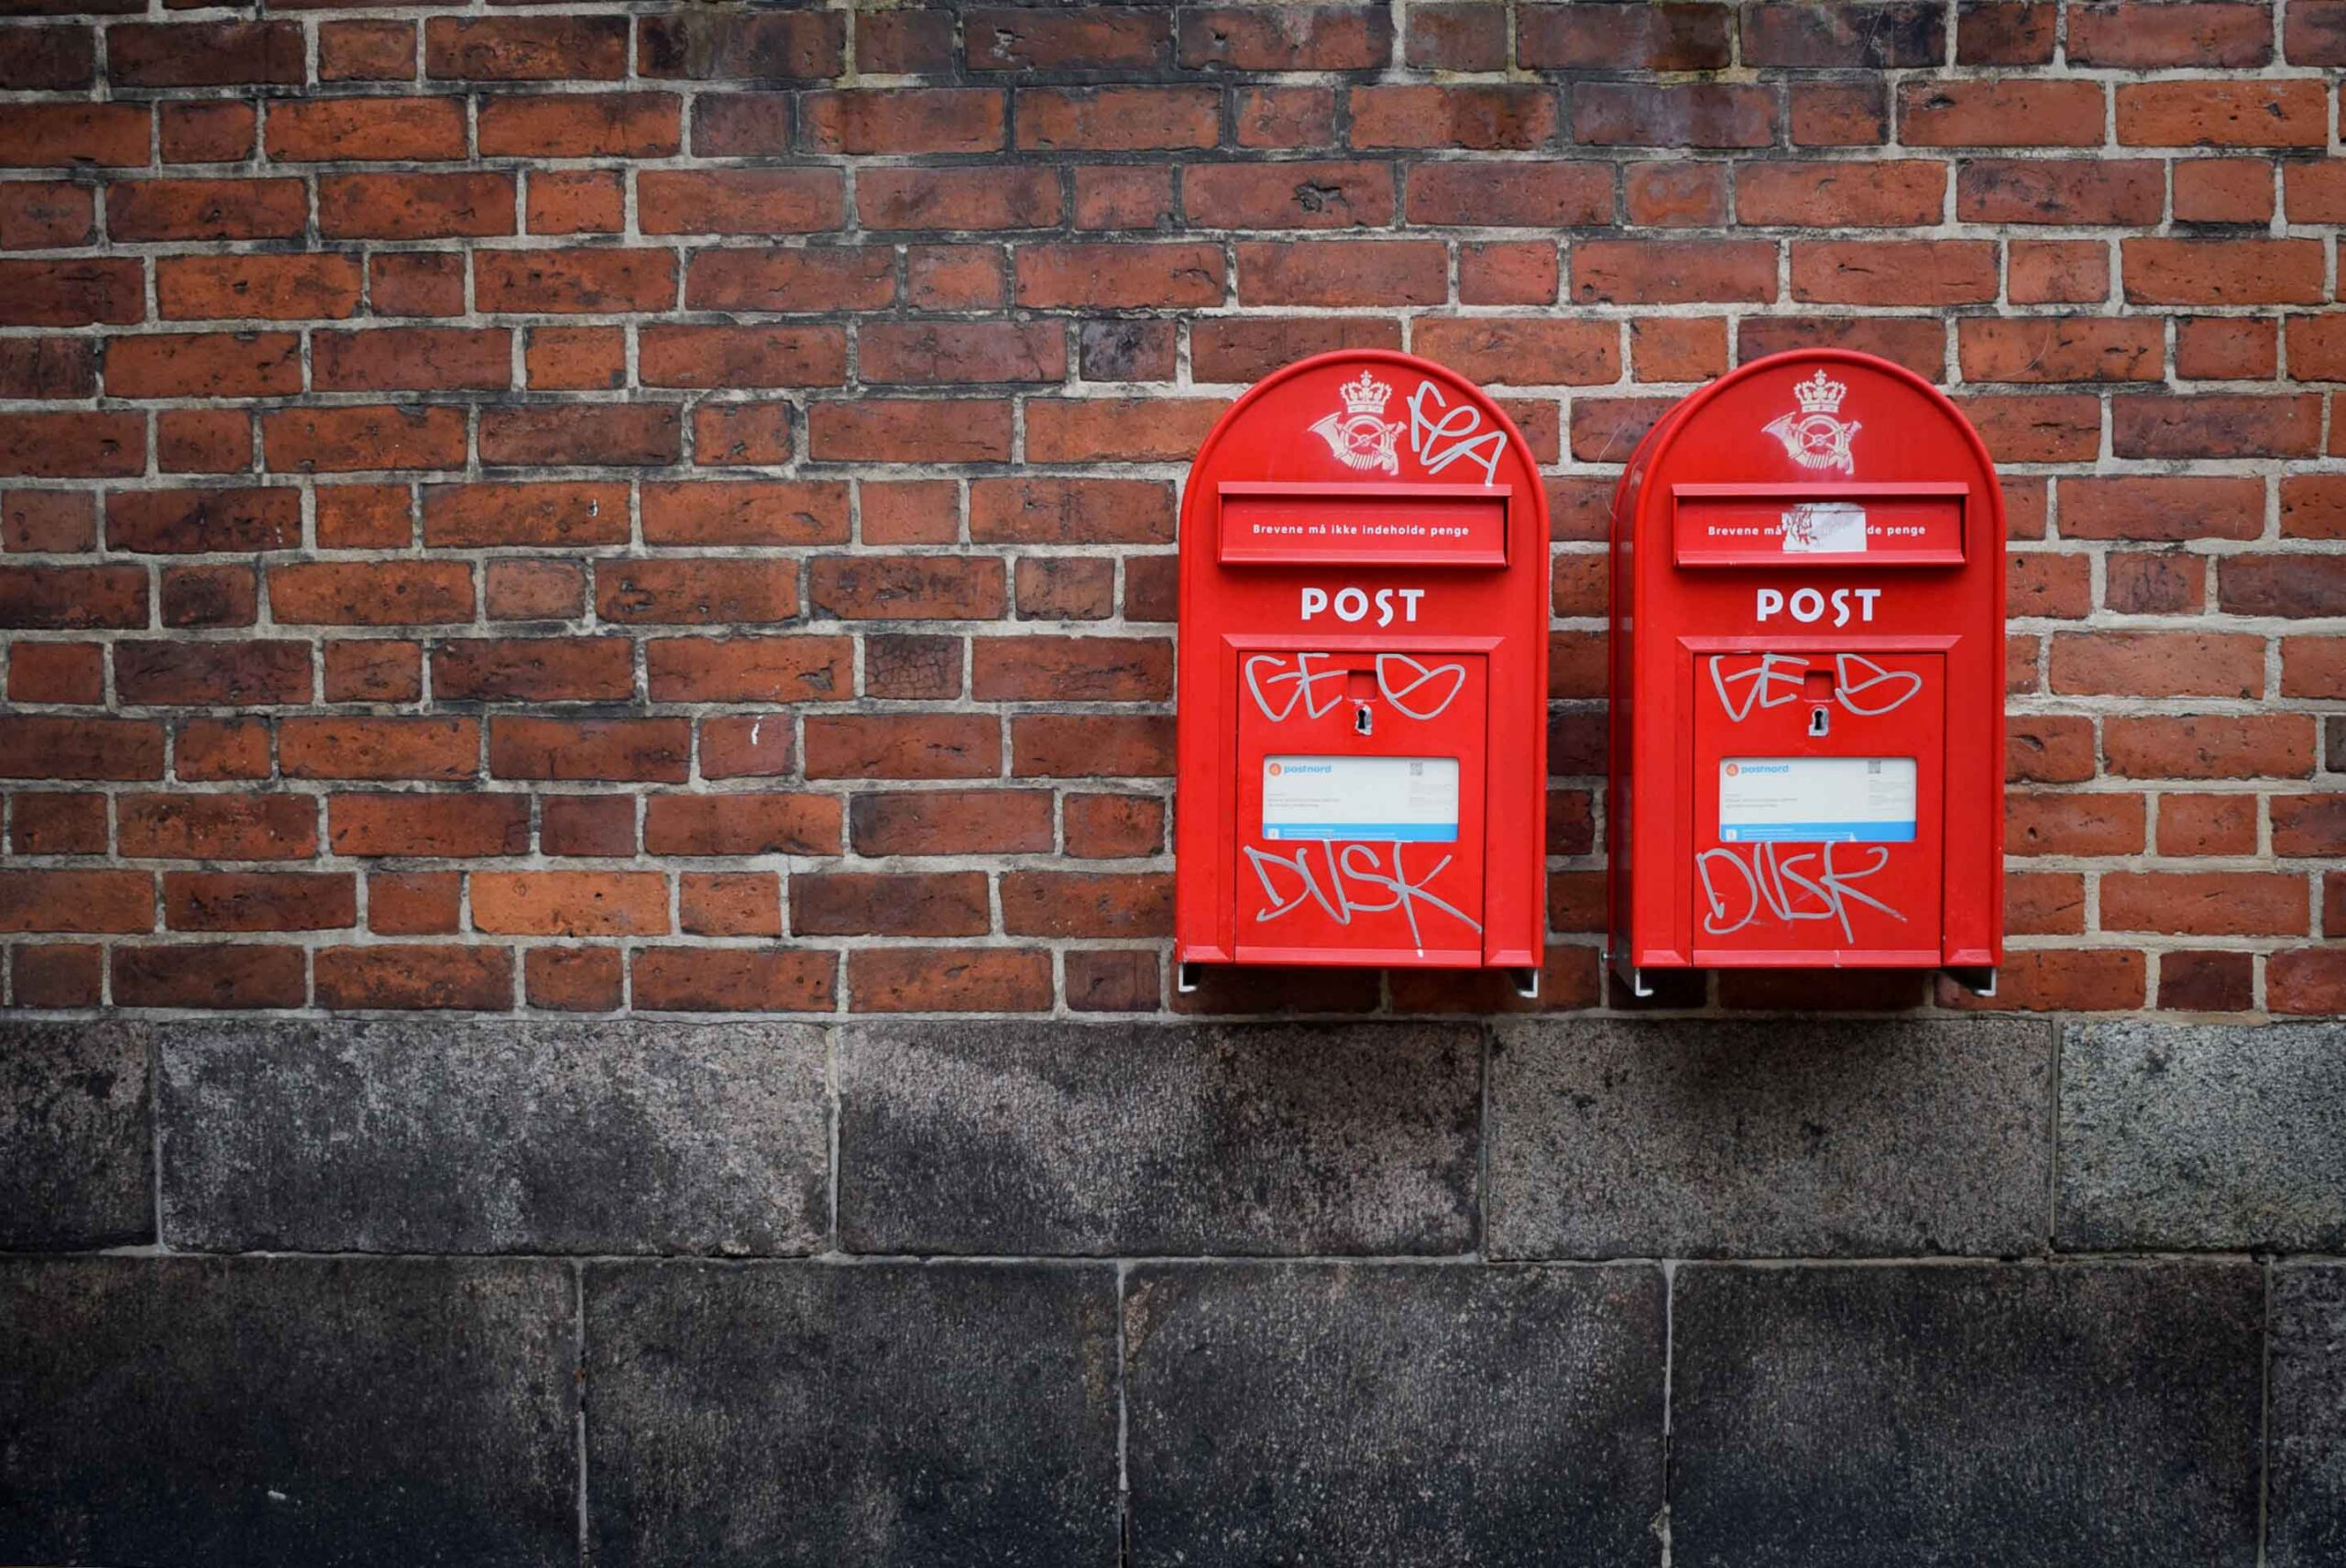 Mailboxes on a brick wall.